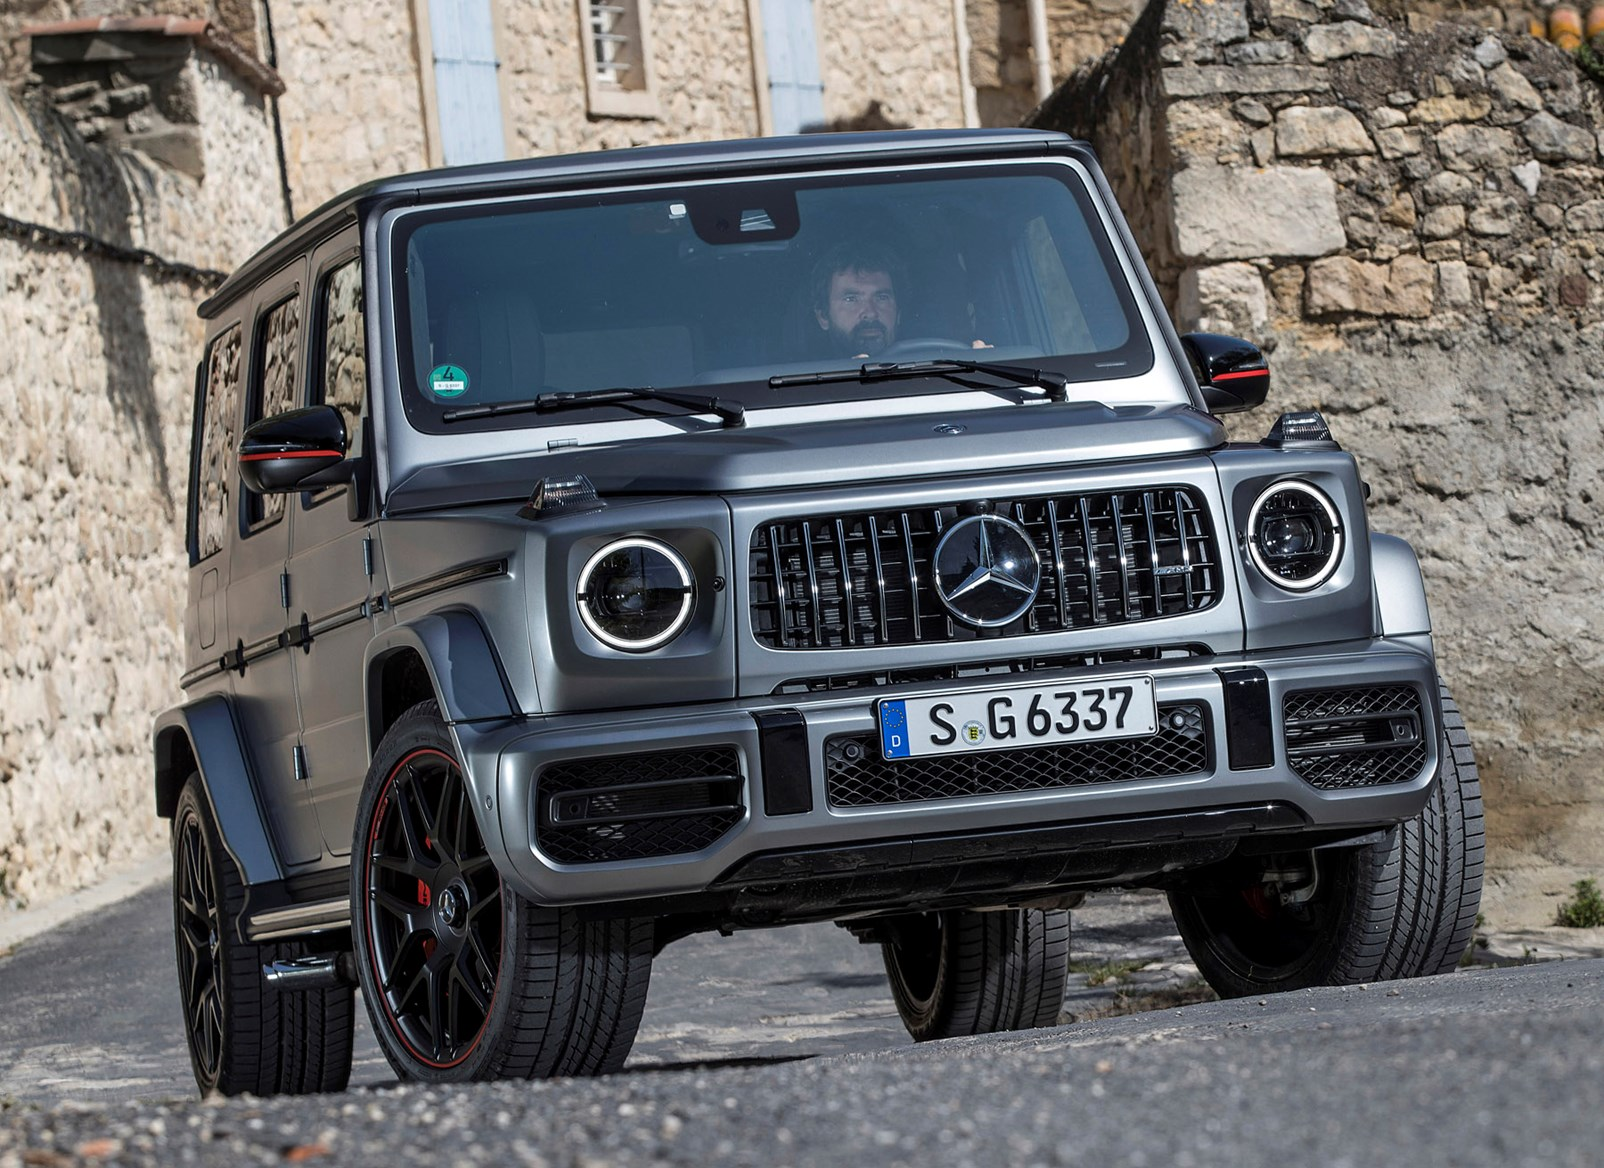 mercedes benz g class suv 2018 photos parkers. Black Bedroom Furniture Sets. Home Design Ideas